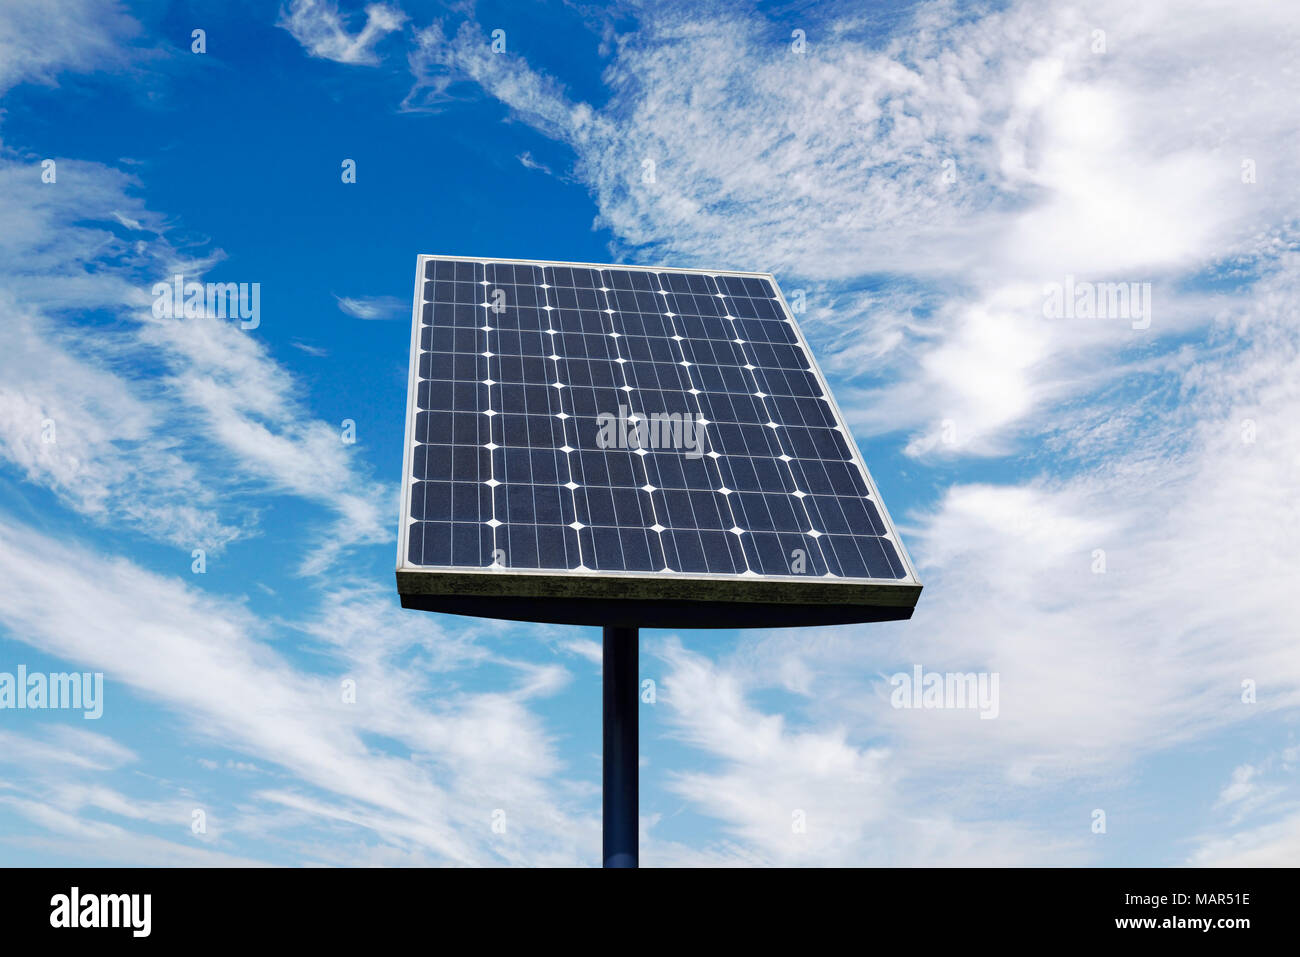 Small Solar Panel Against a Cloudy Blue Sky - Stock Image